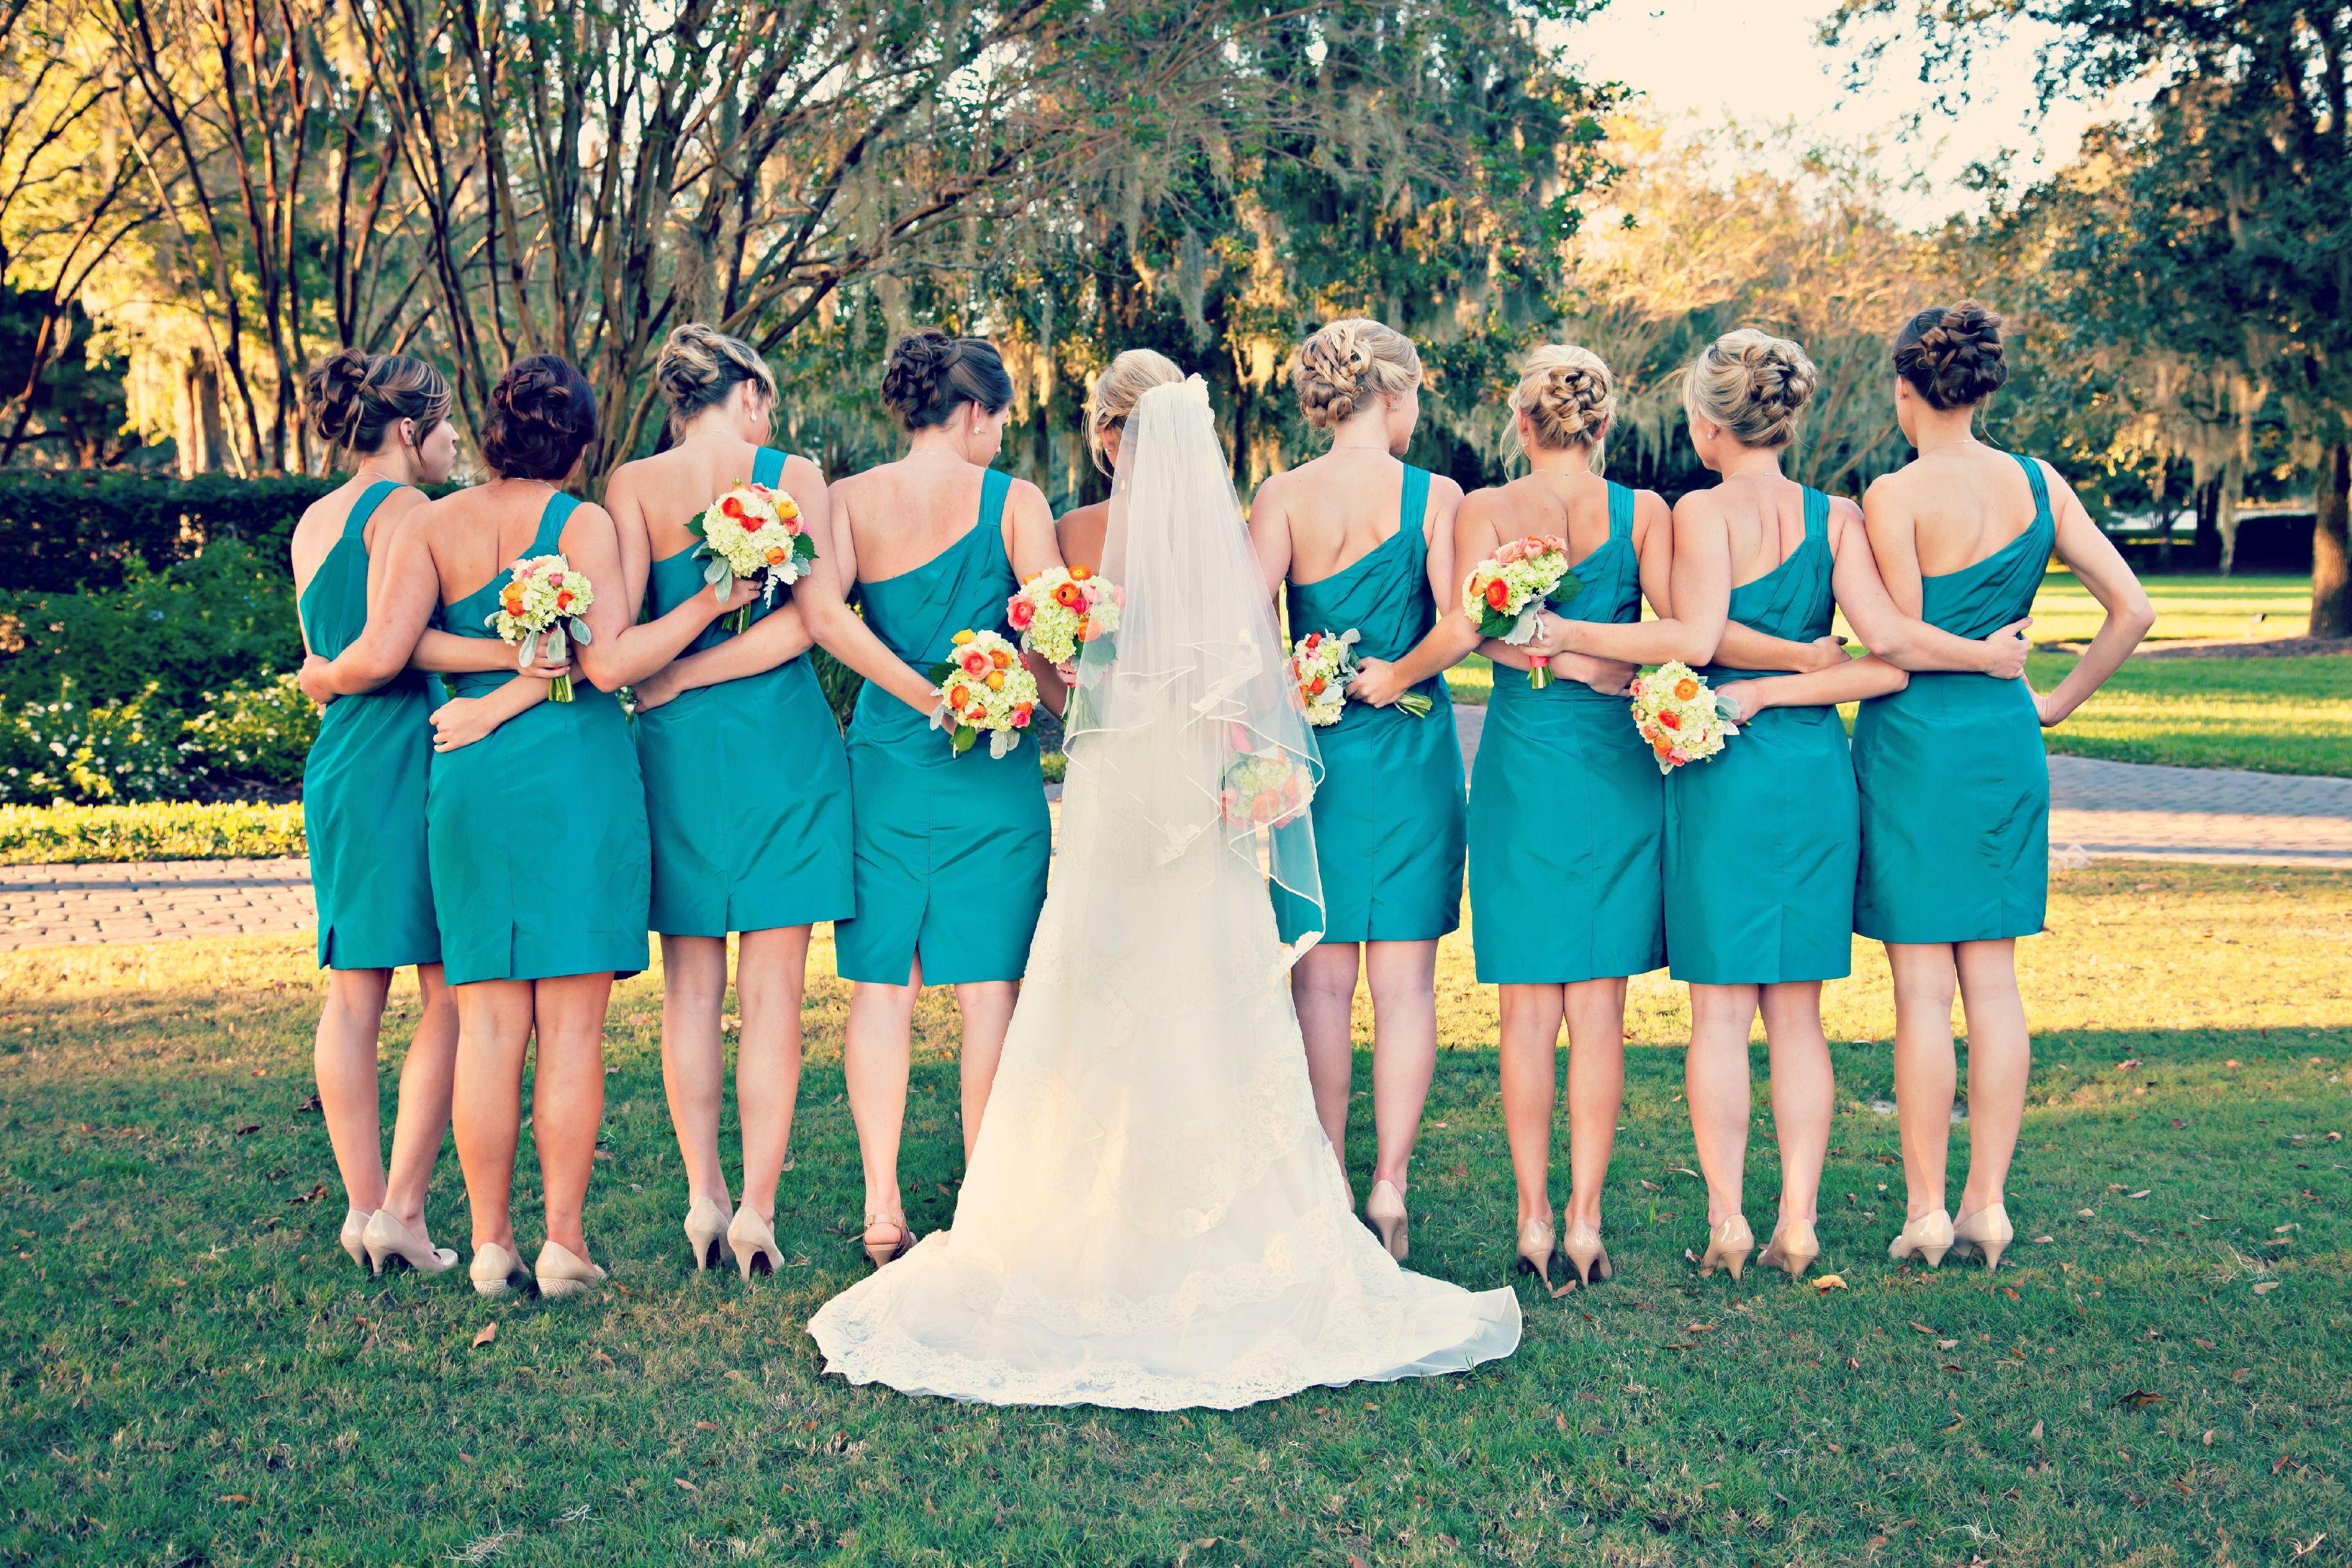 Bridesmaids in Teal - Rustic Outdoor Florida Wedding - J Crew ...